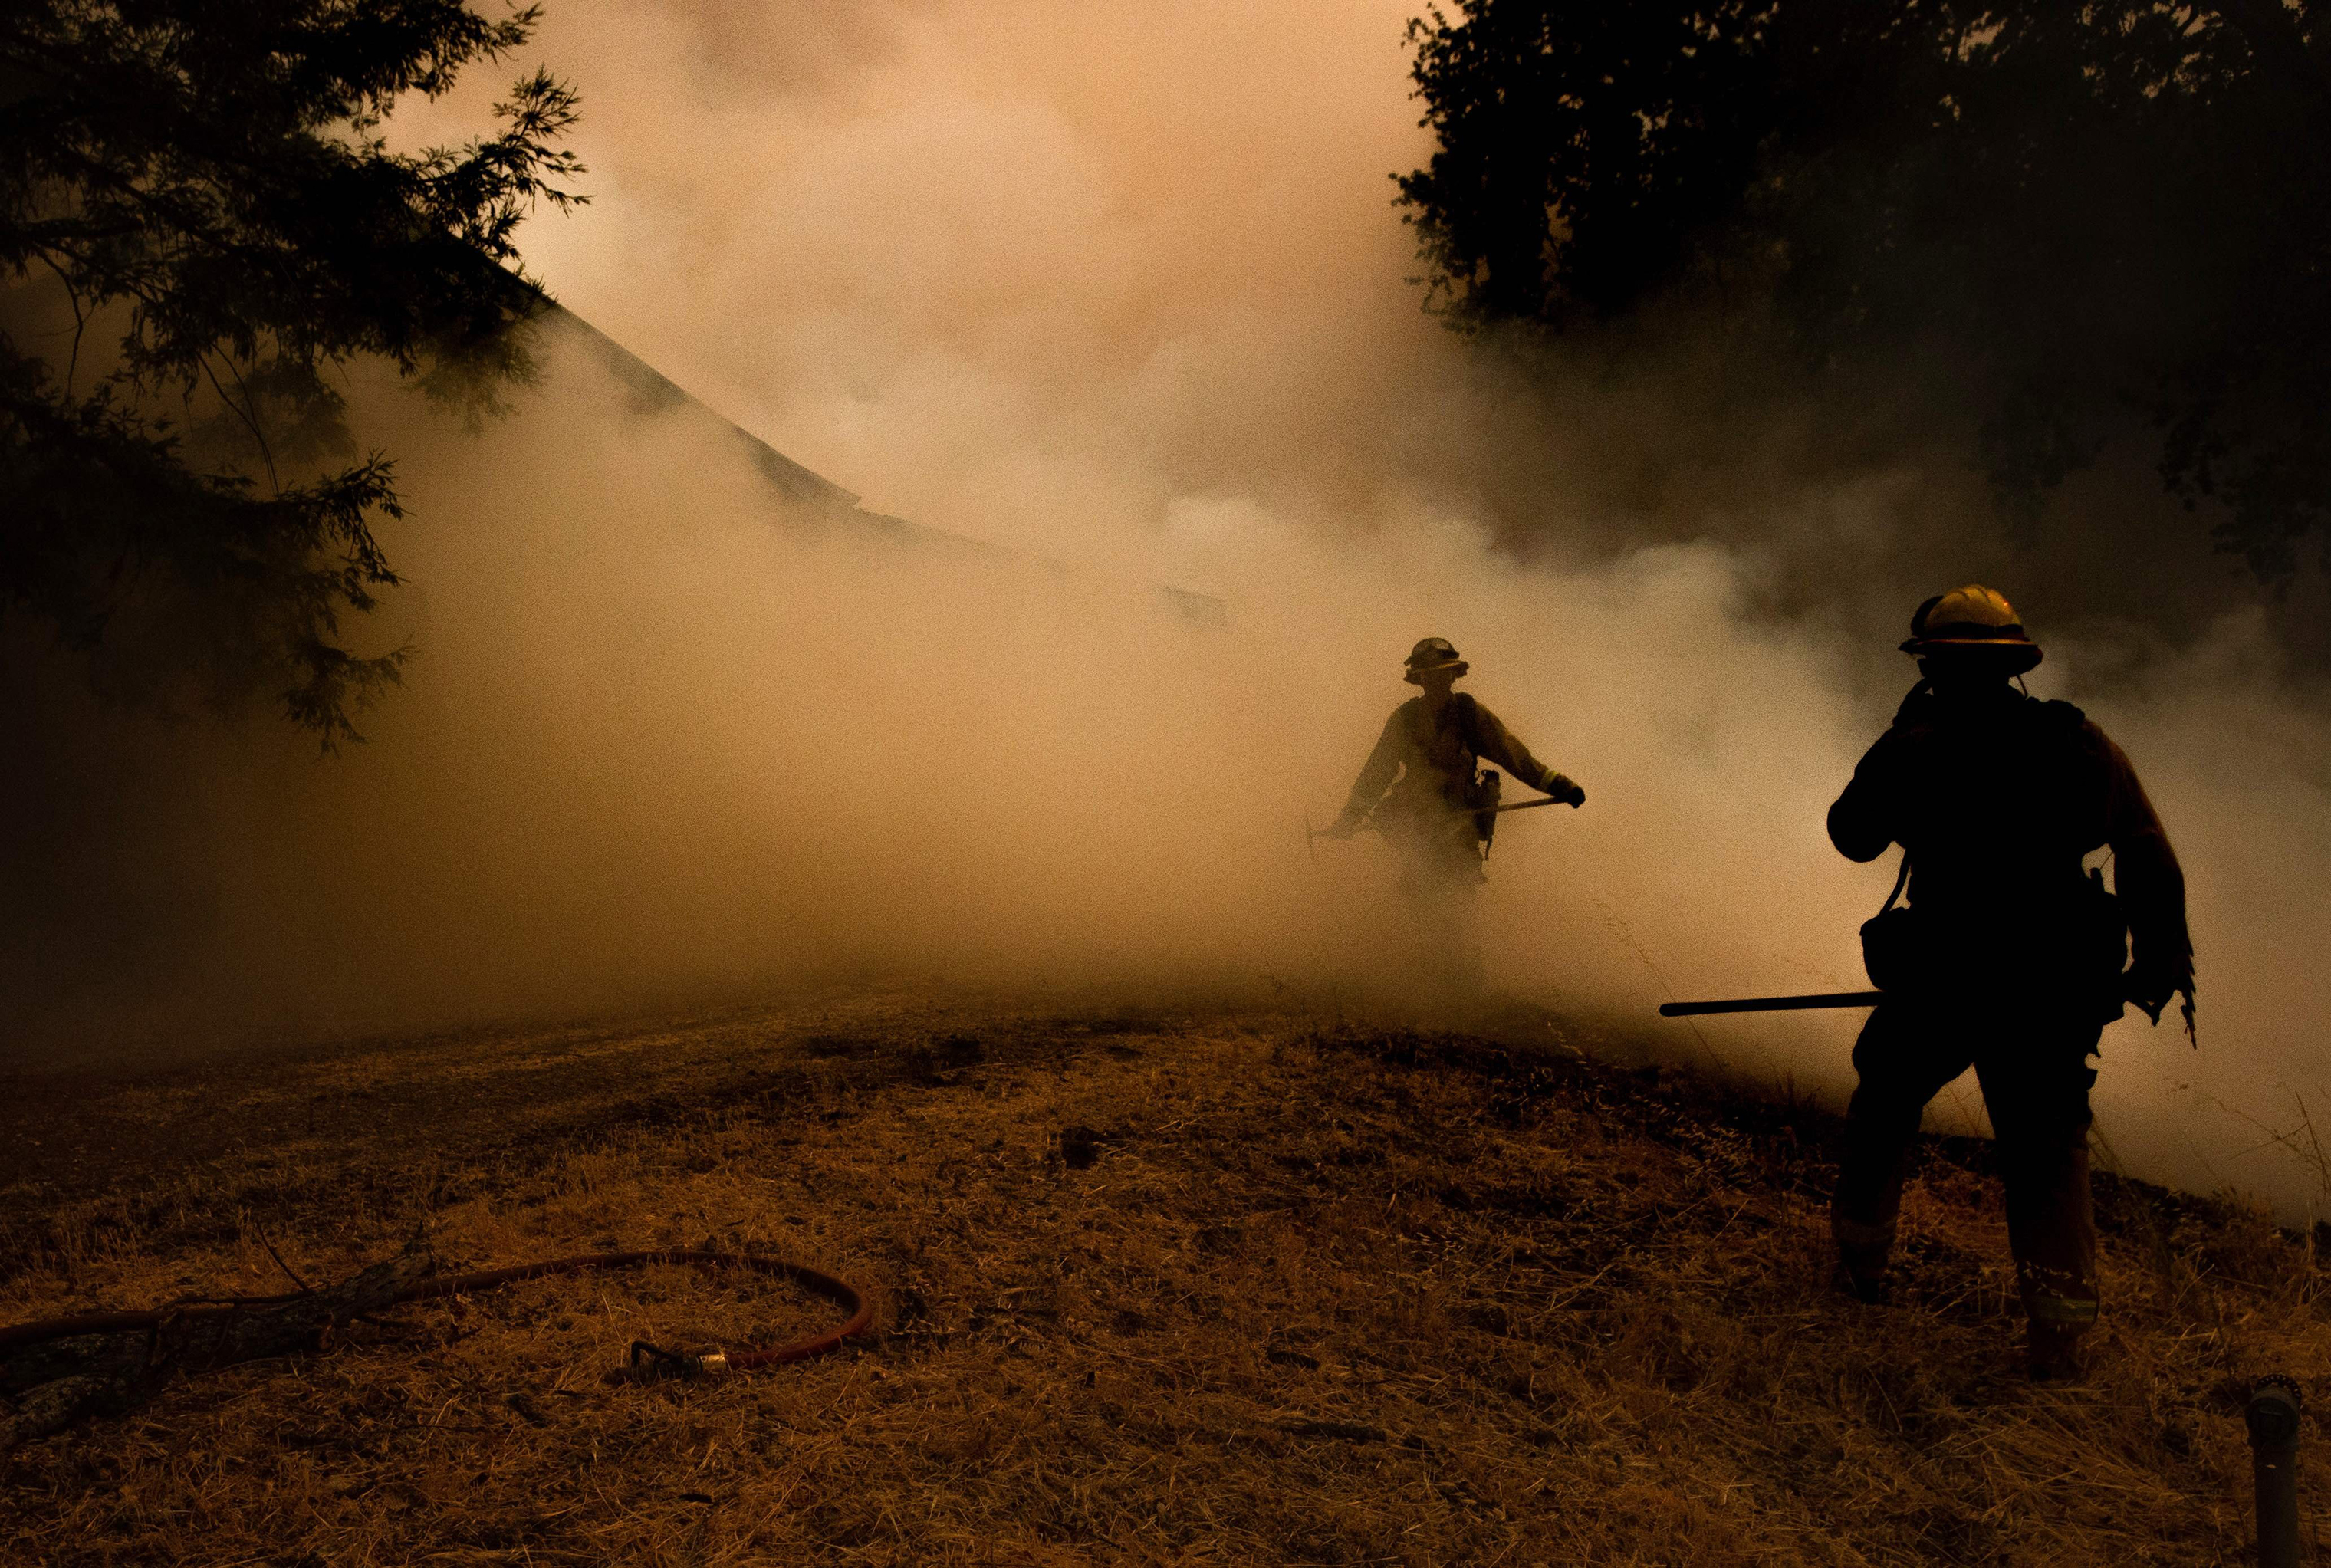 A firefighter walks through smoke as flames approach a home during the Mendocino Complex fire in Lakeport, Calif. on July 30.